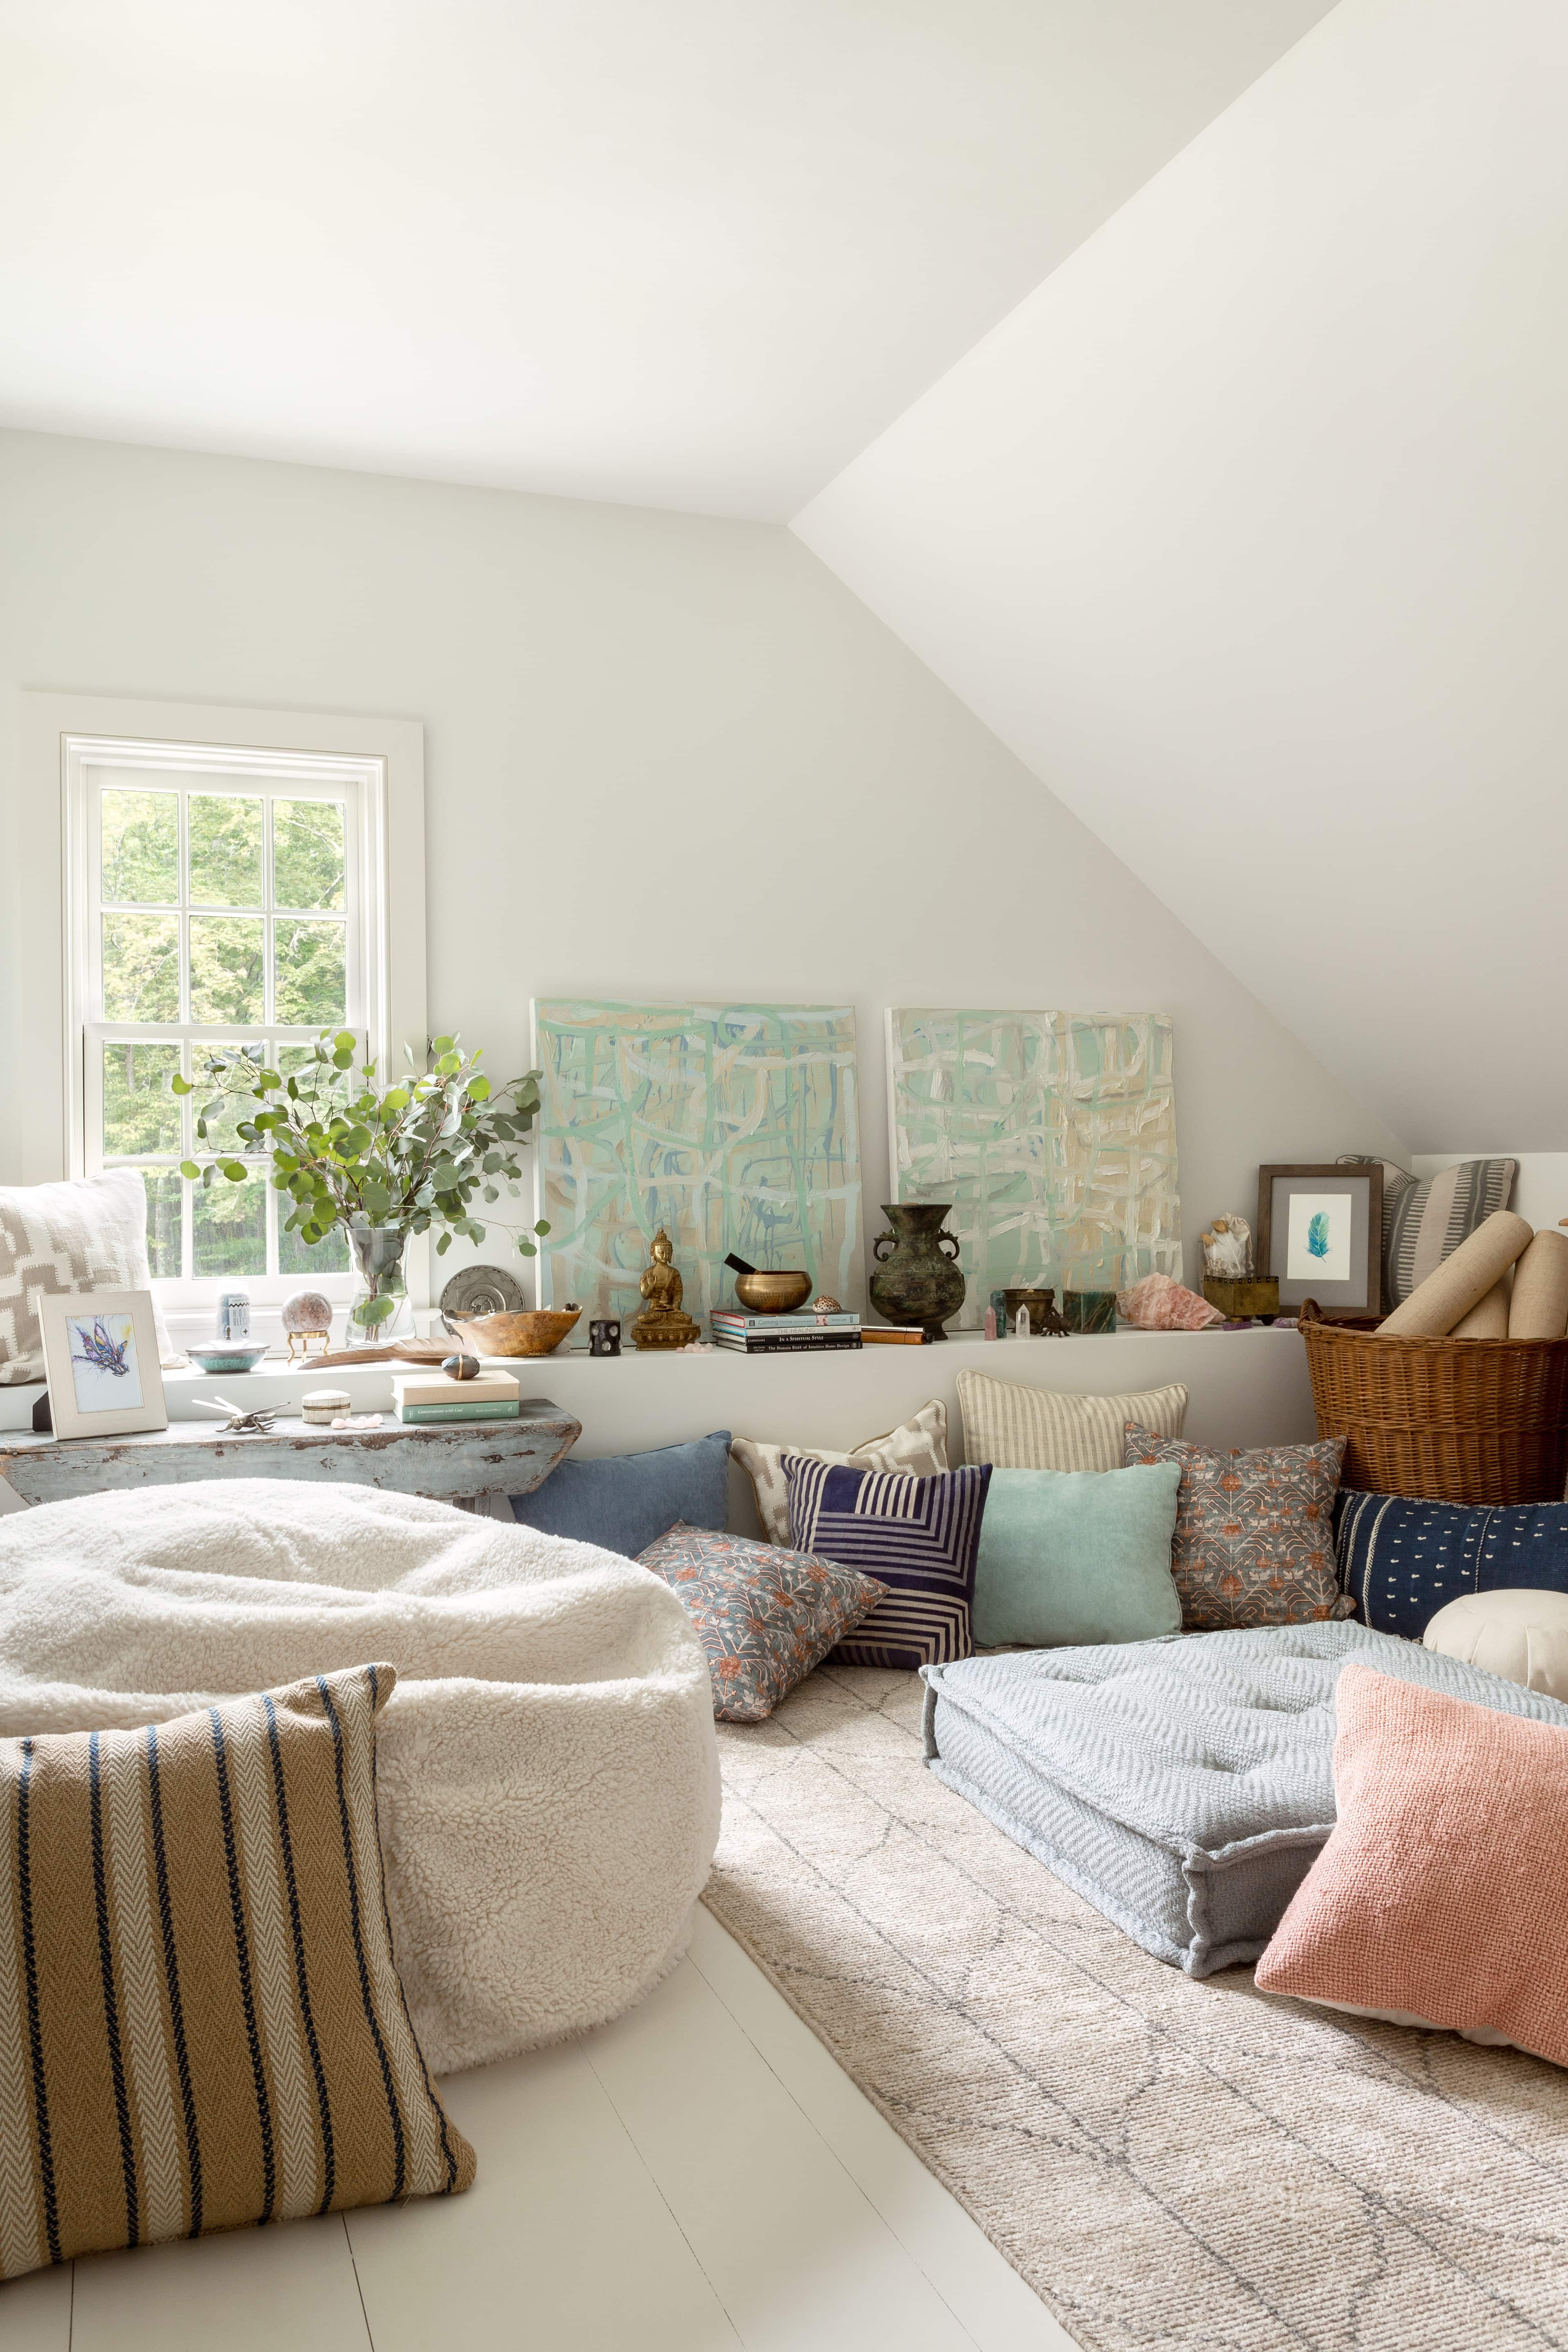 Litchfield County loft with white walls and pillows on floor